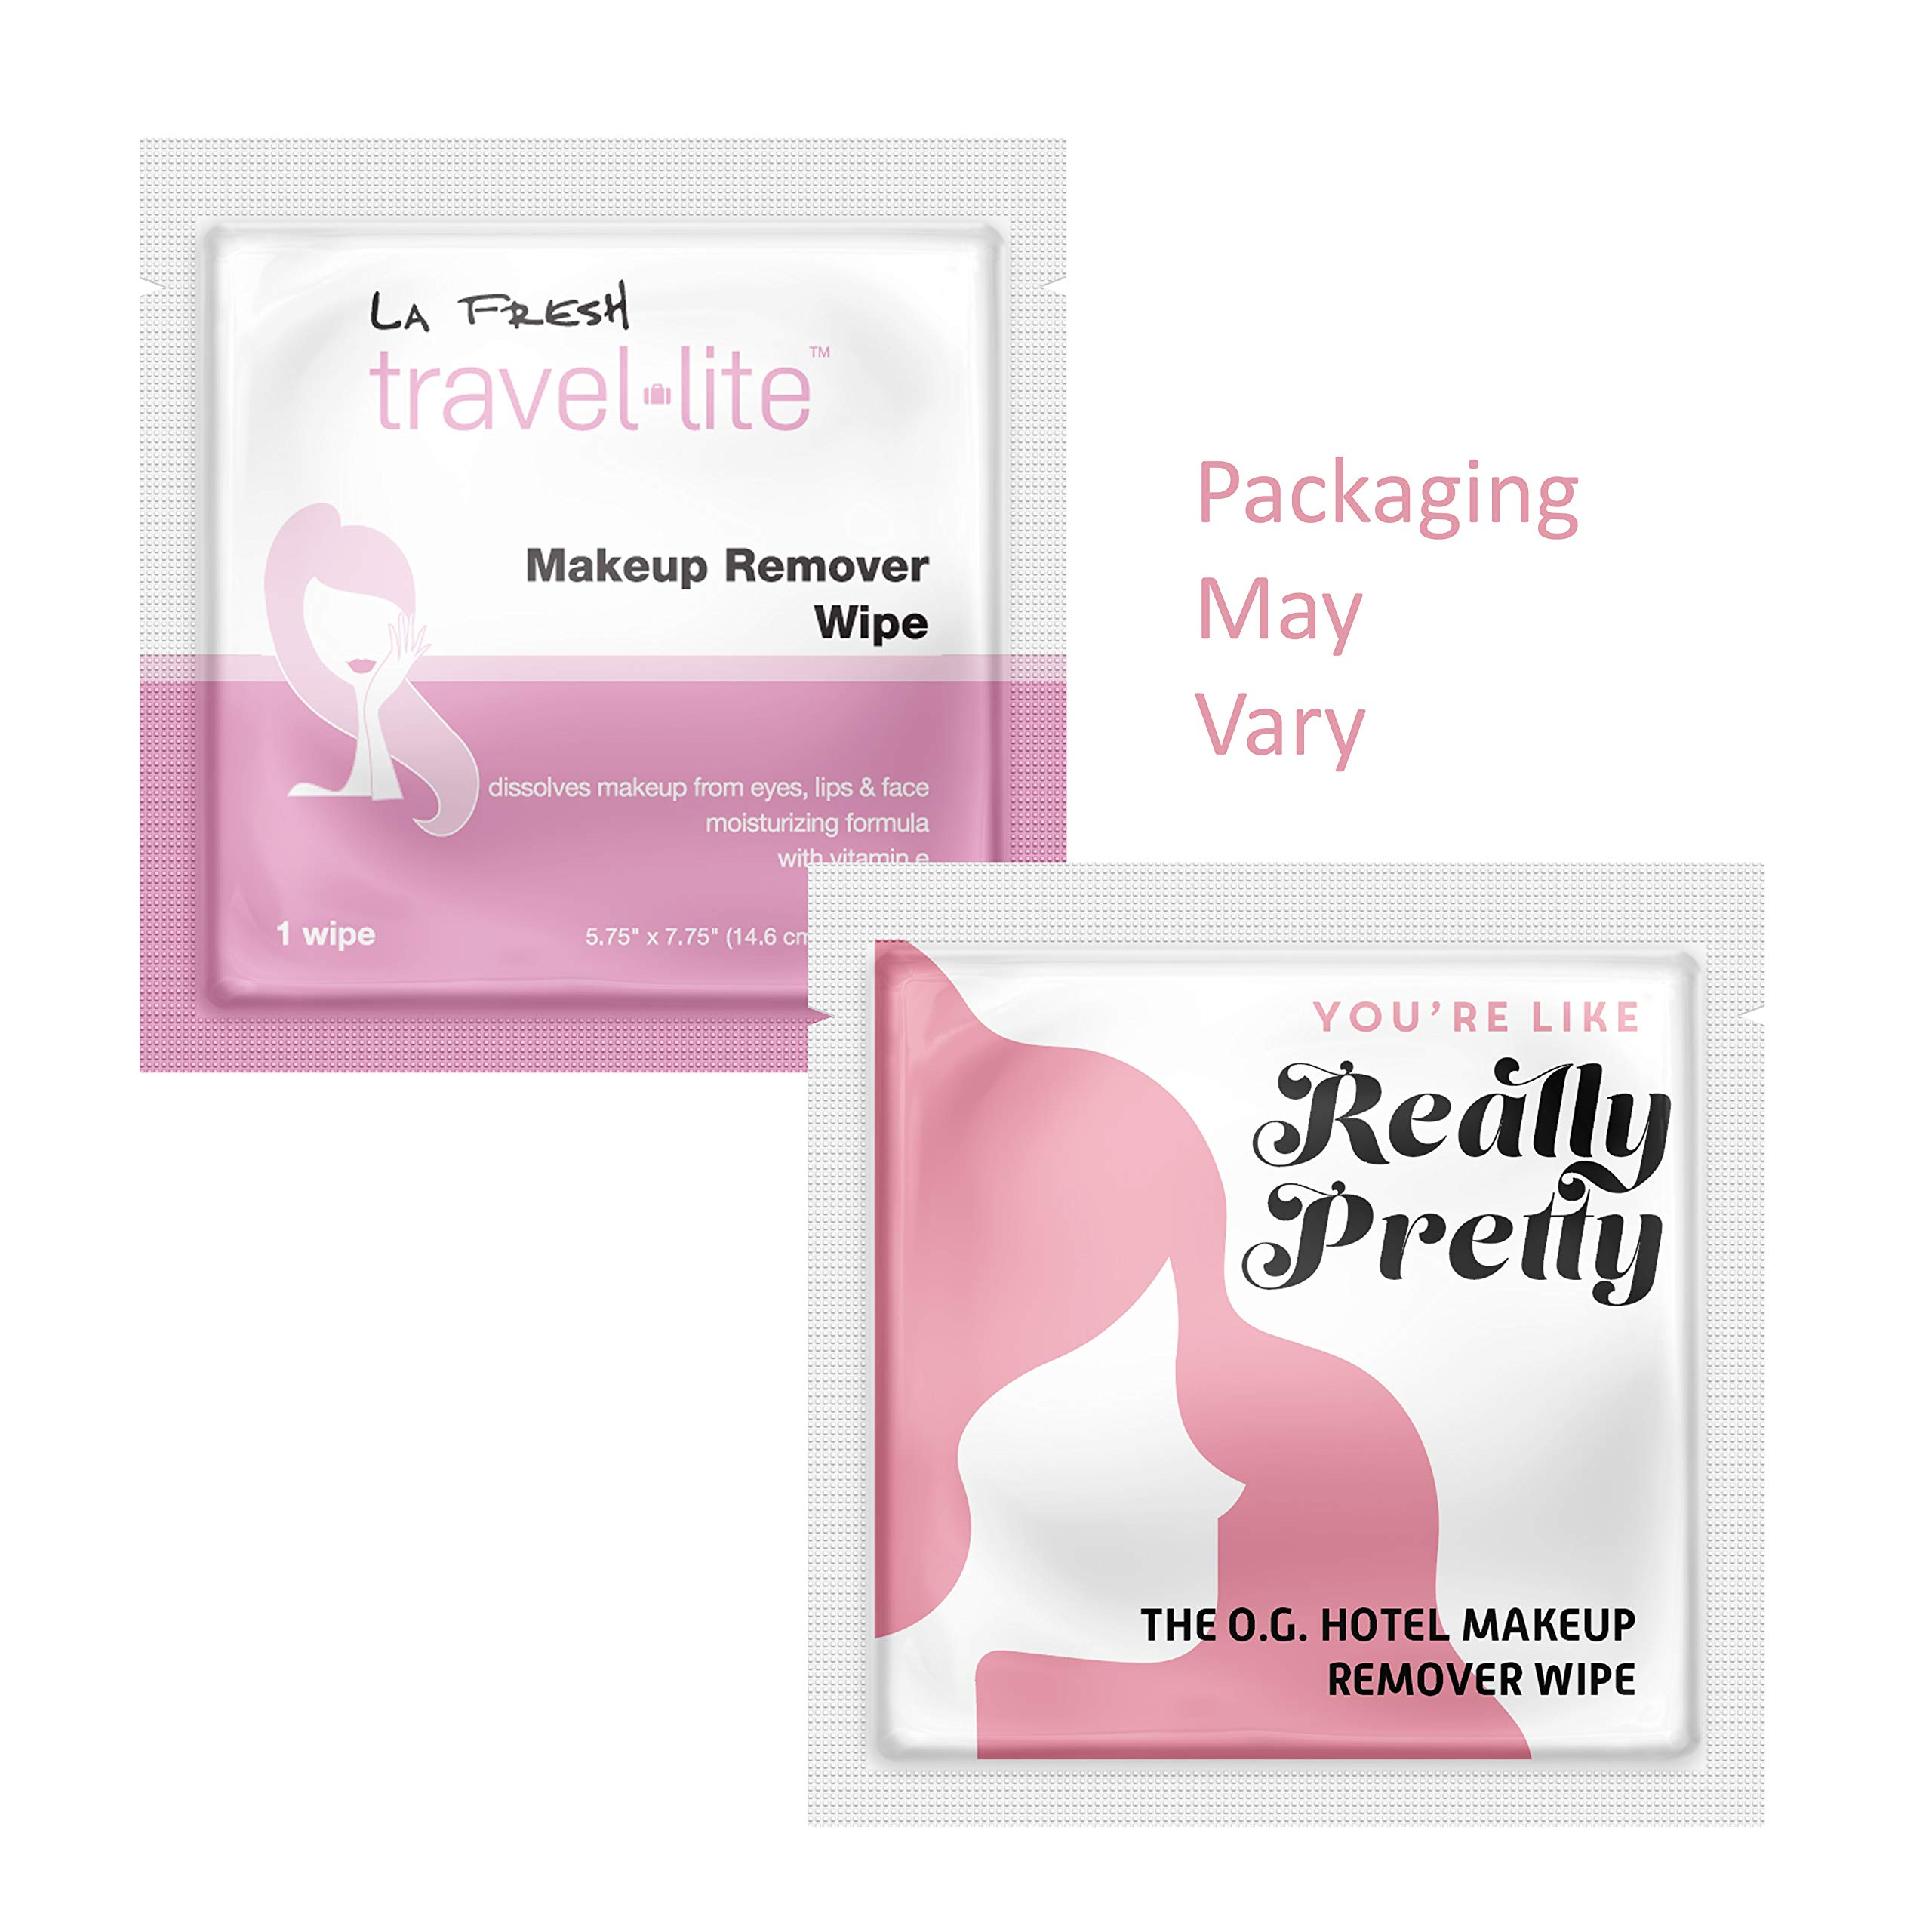 La Fresh Travel Lite Makeup Remover Cleansing Travel Wipes - Natural, Biodegradable, Waterproof, Facial Towelettes With Vitamin E - Individually Wrapped & Sealed (Pack of 200) by La Fresh (Image #3)